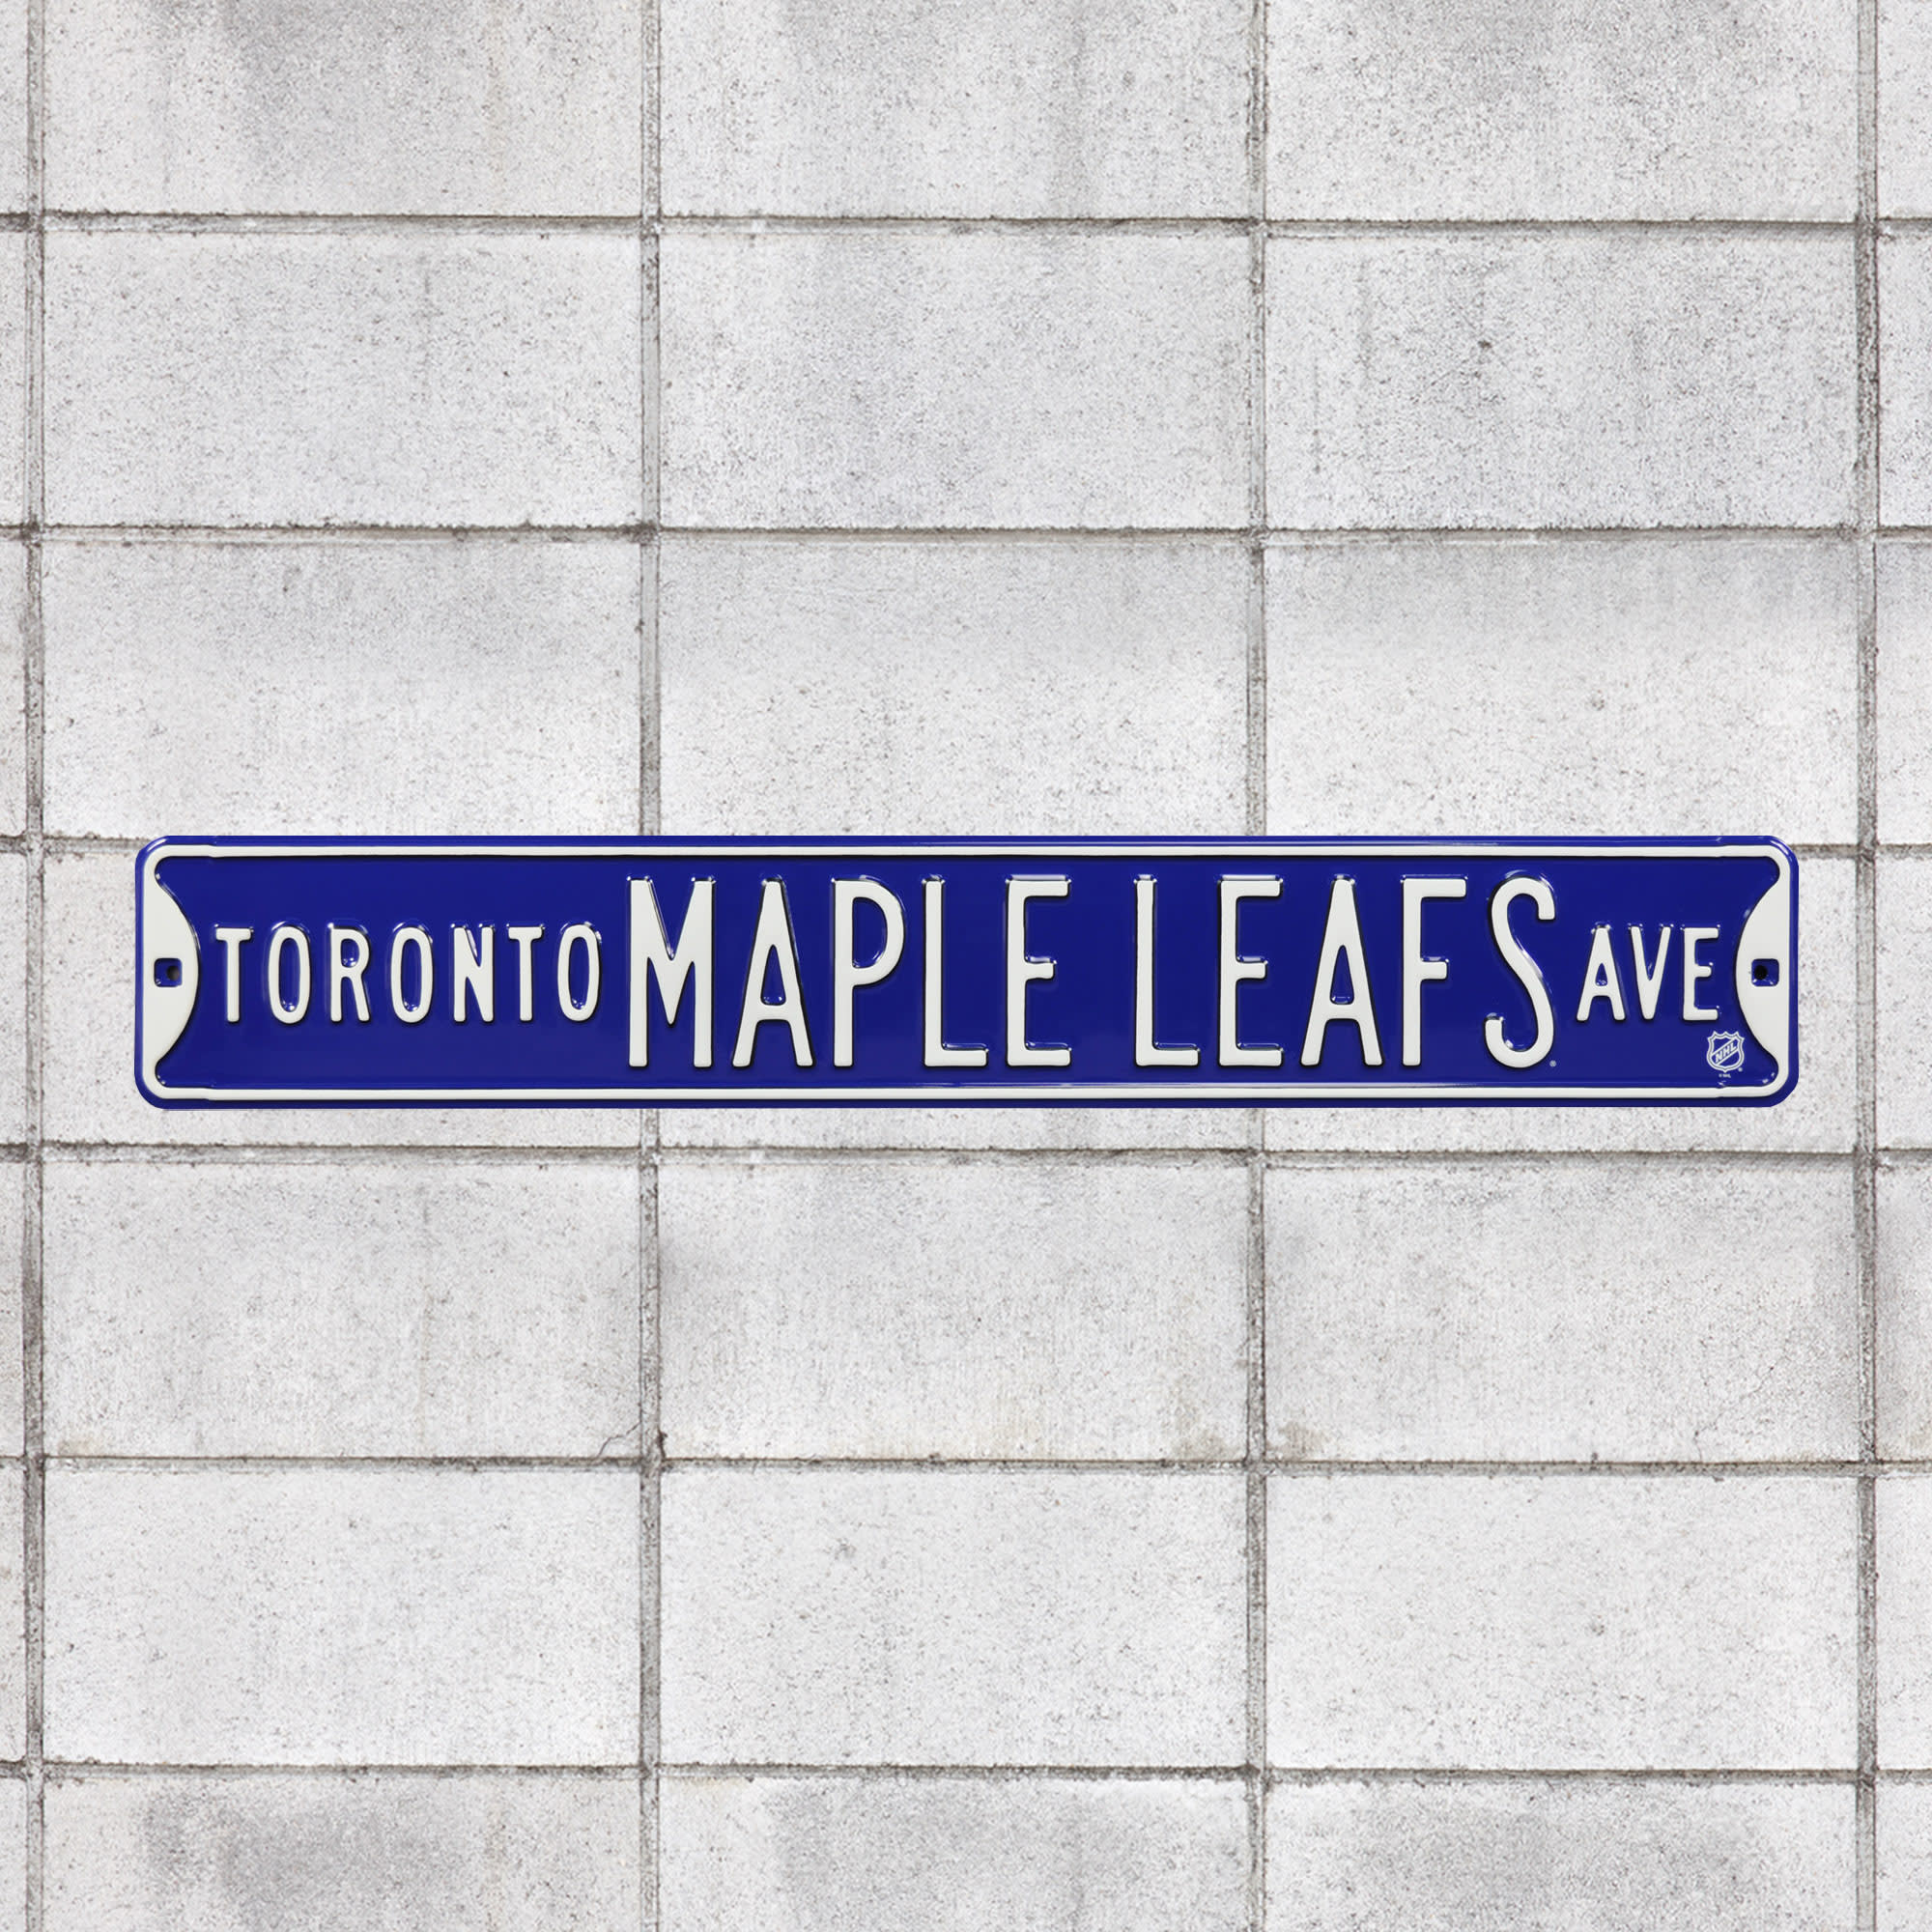 """Toronto Maple Leafs: Toronto Maple Leafs Avenue - Officially Licensed NHL Metal Street Sign 36.0""""W x 6.0""""H by Fathead 